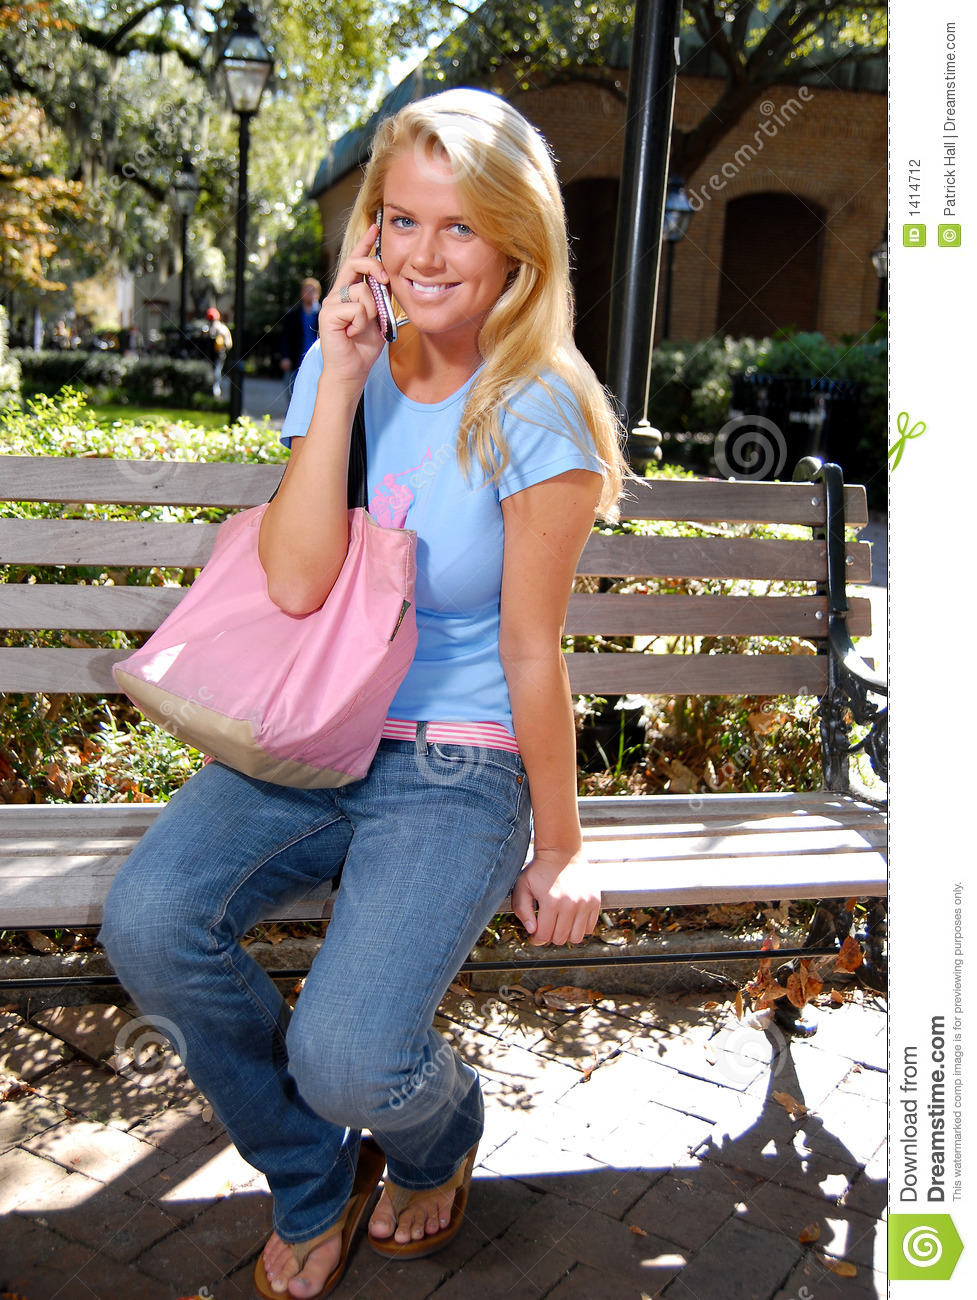 Hot student on cell phone stock photography image 1414712 for Hot student pics